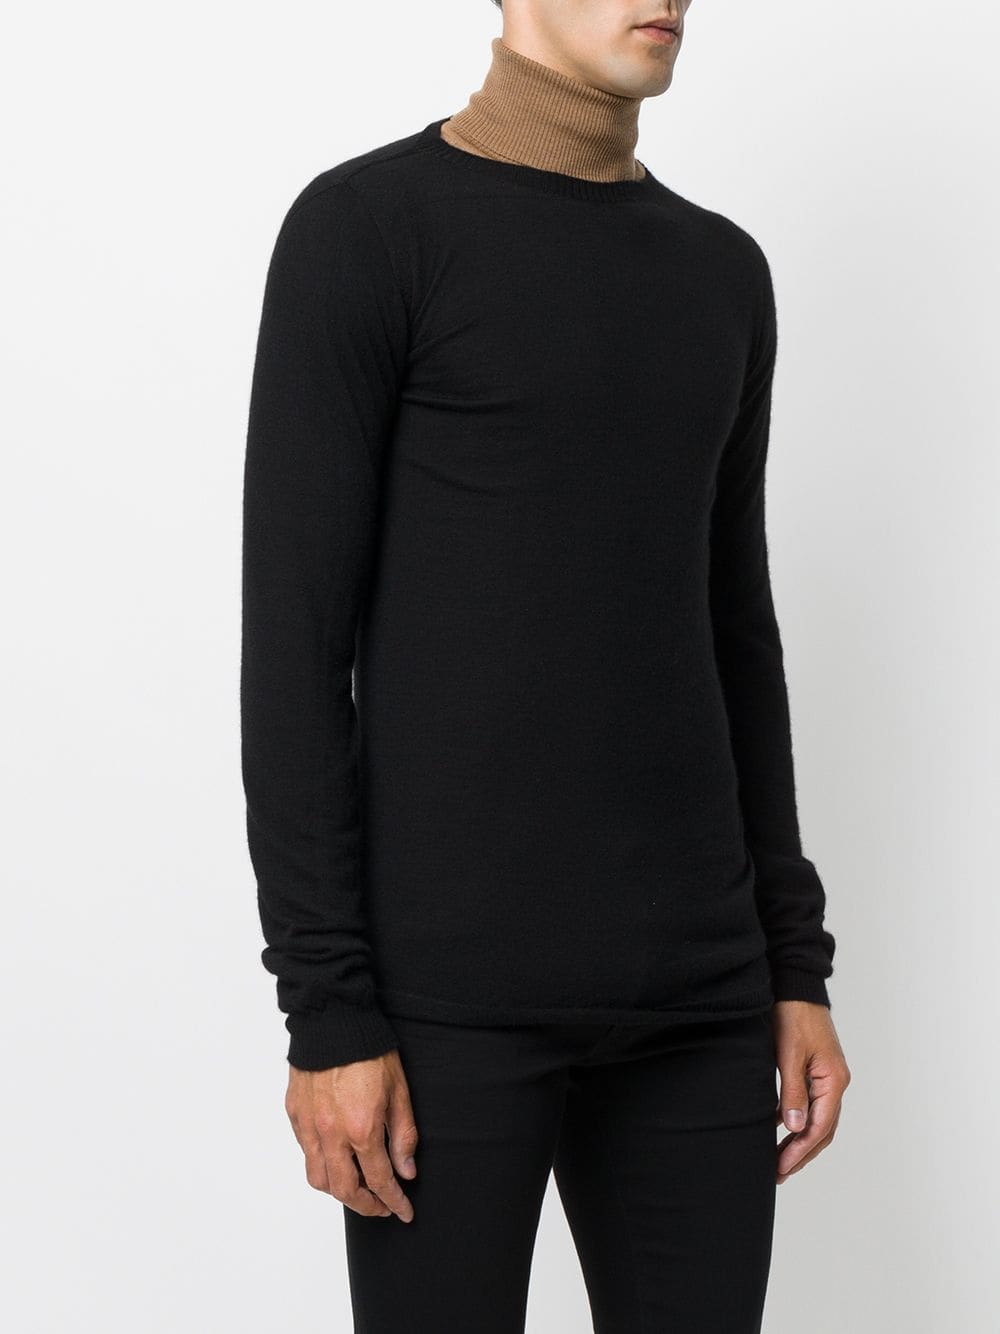 RICK OWENS MEN BIKER LEVEL ROUND NECK SWEATER